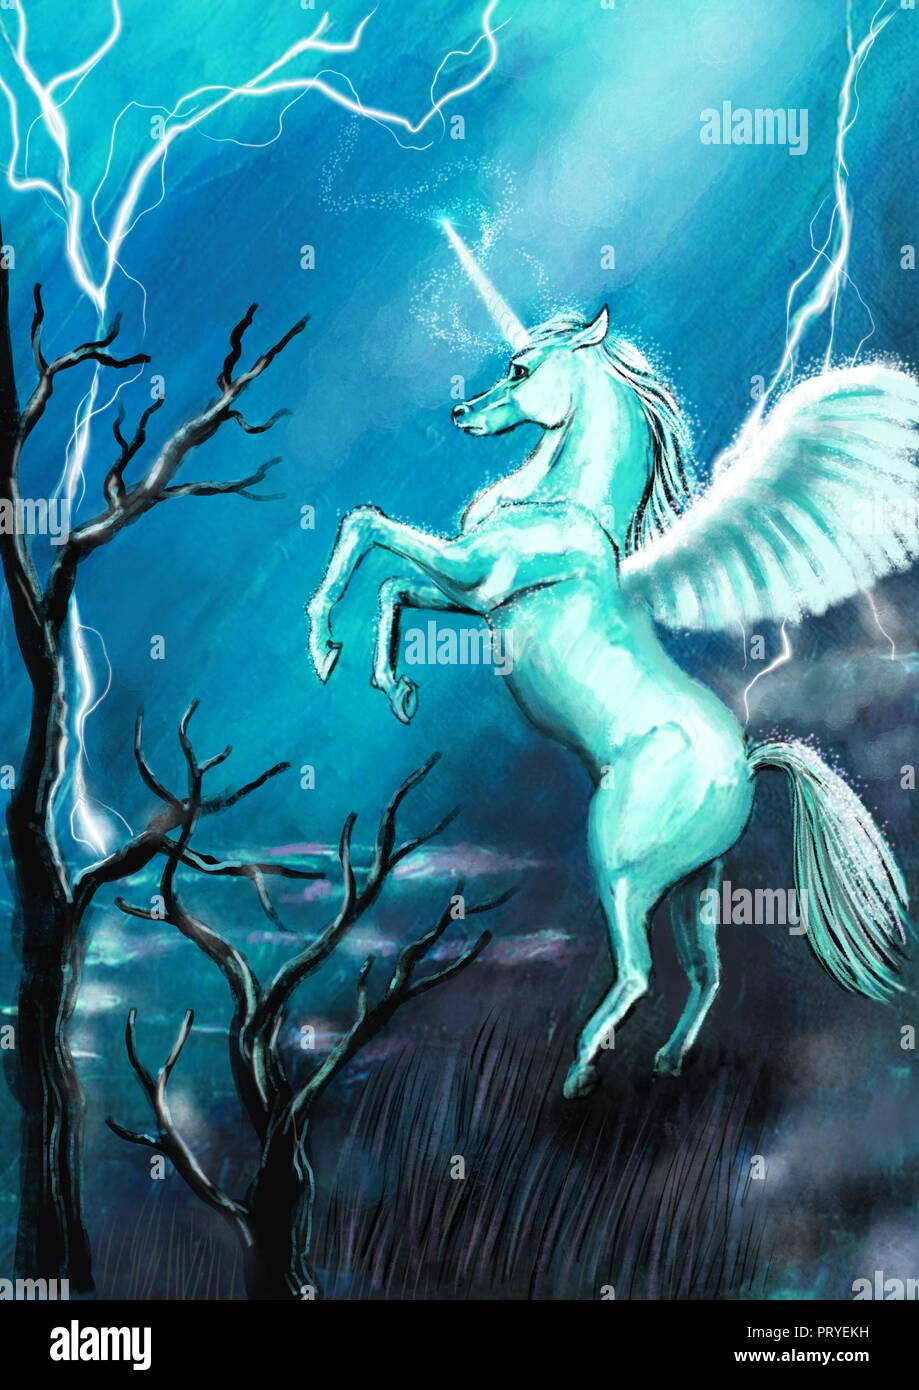 Unicorn illustration Stock Photo